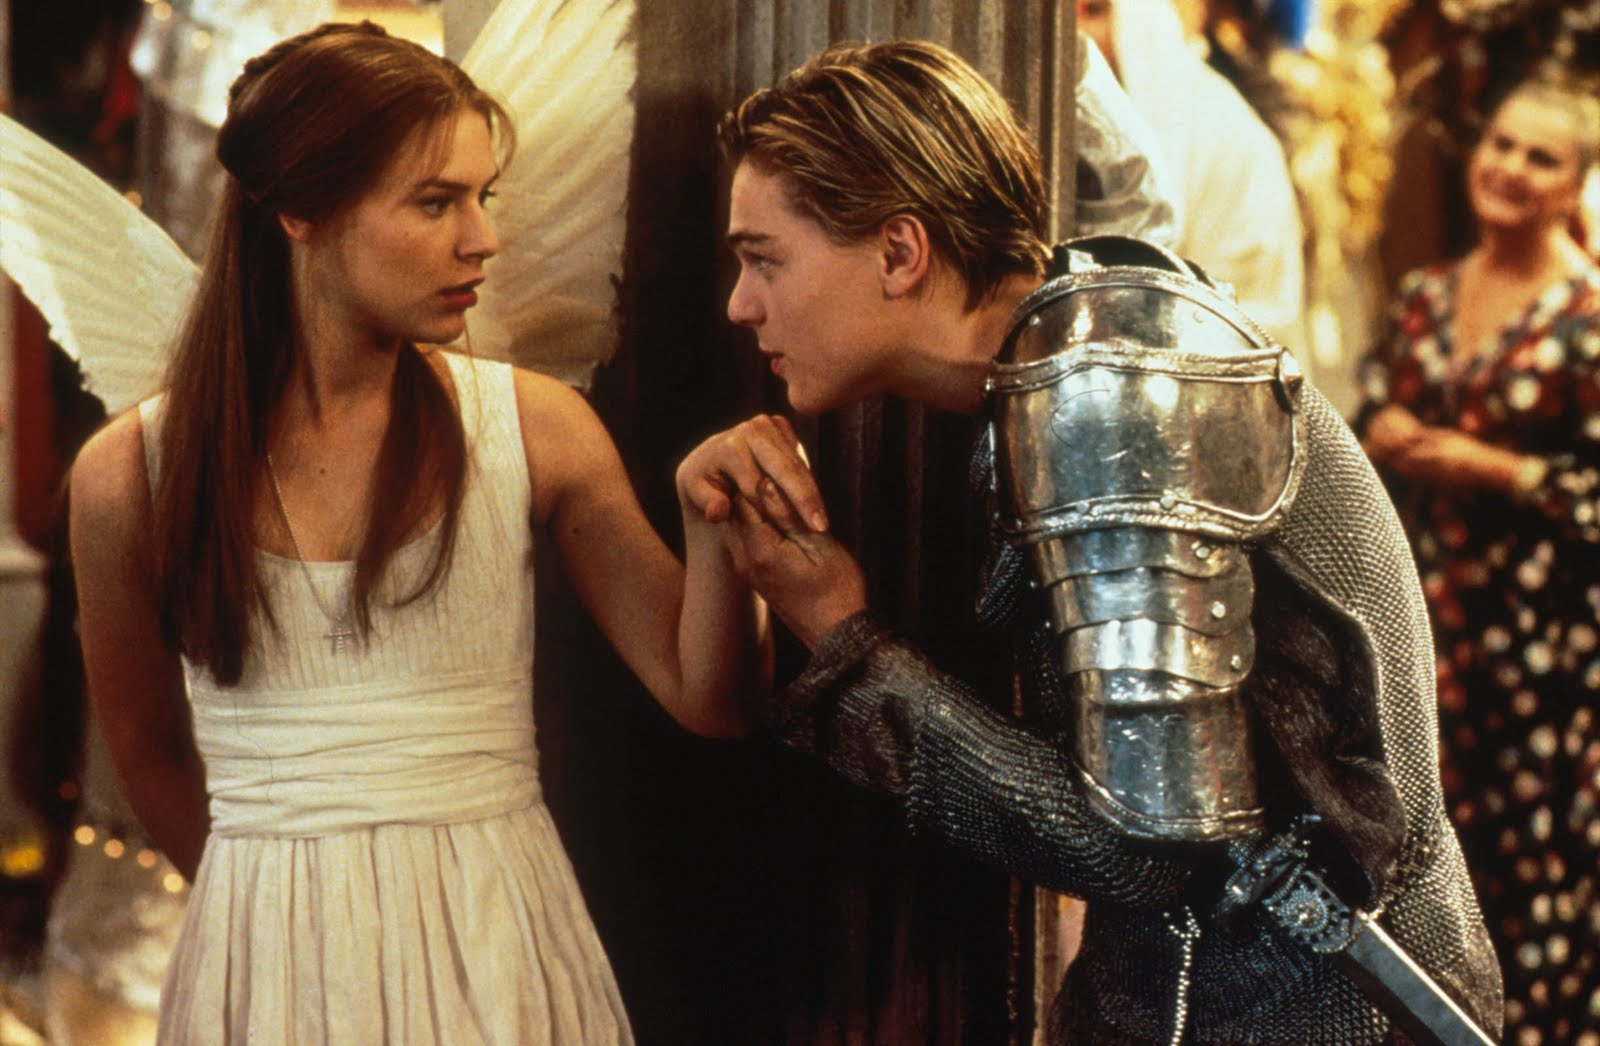 ARCHIVE REVIEW: Romeo + Juliet | CyniCritics